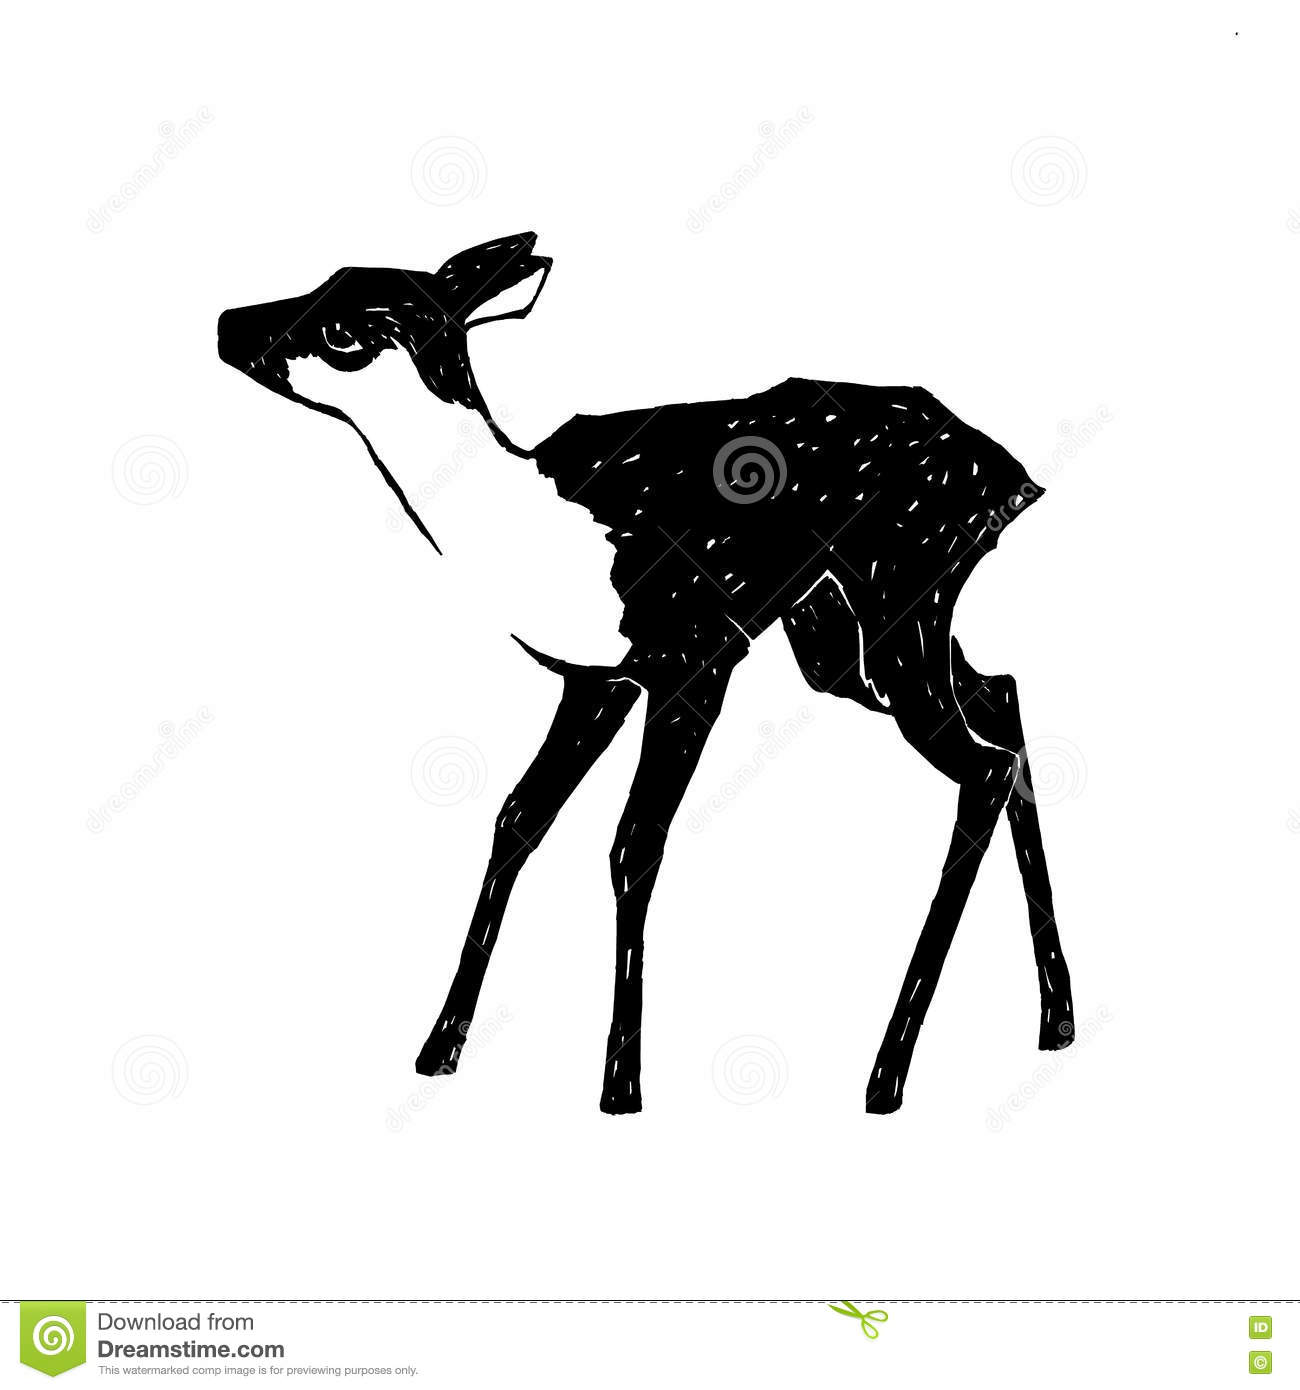 Fawn illustration stock illustration. Illustration of ...